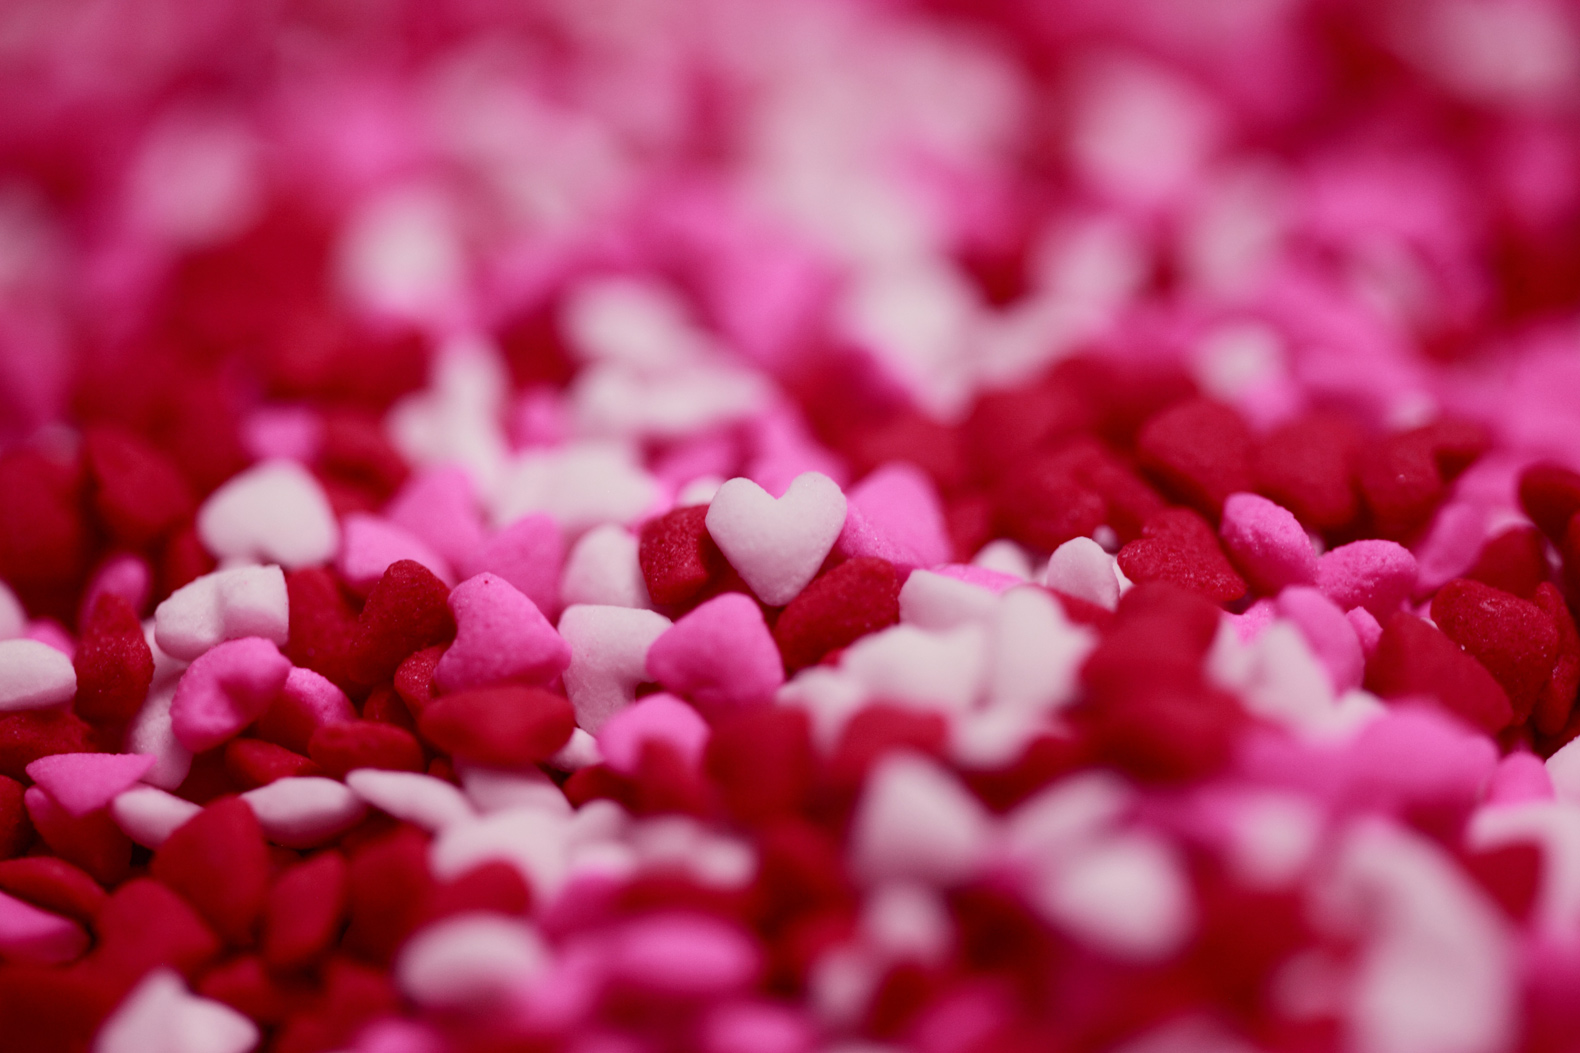 9 ways to have an eco-friendly Valentine's Day